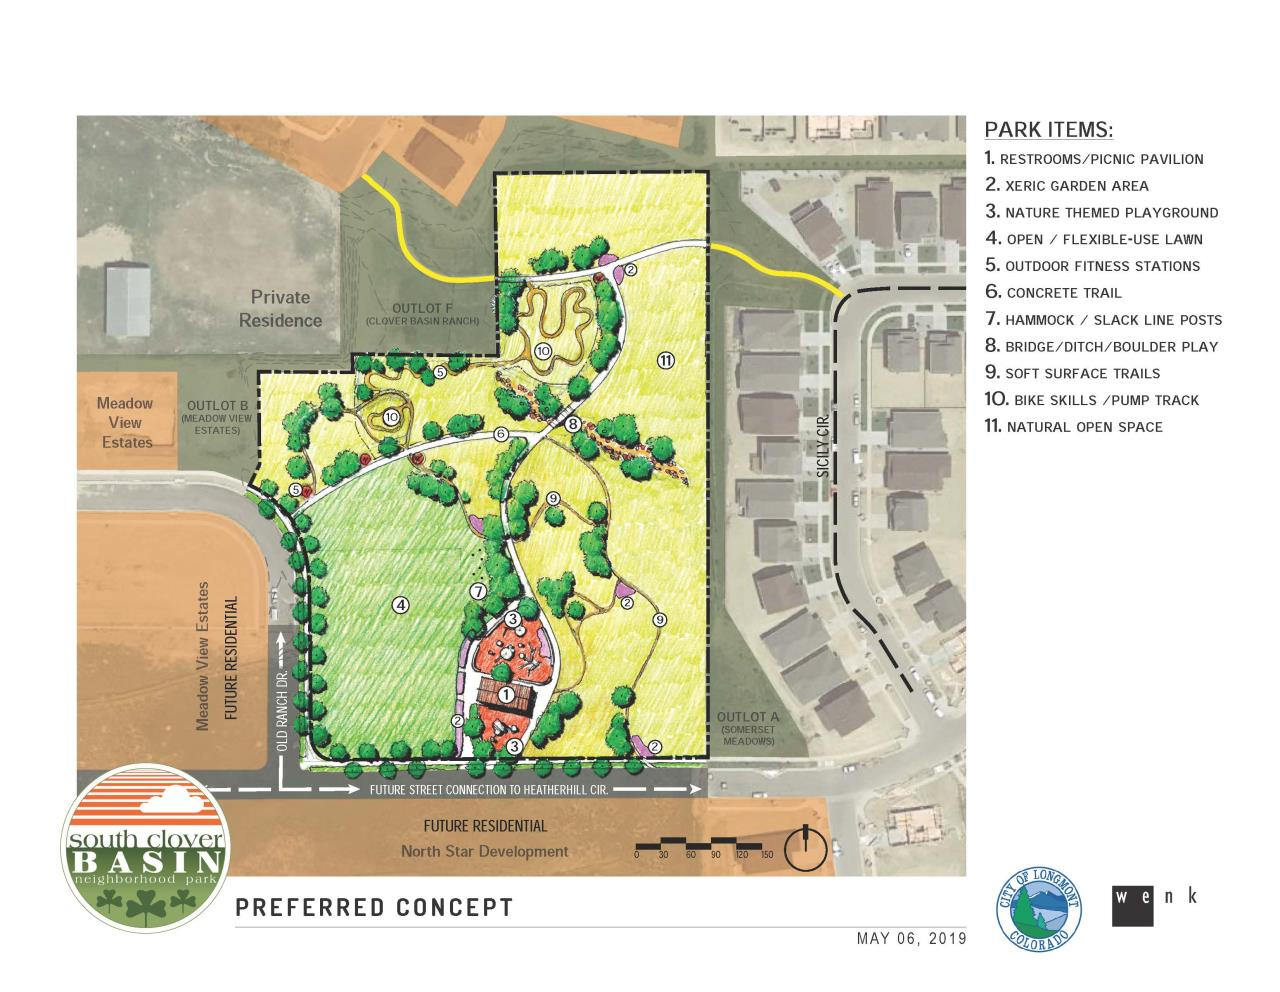 South Clover Basin Park master plan selected